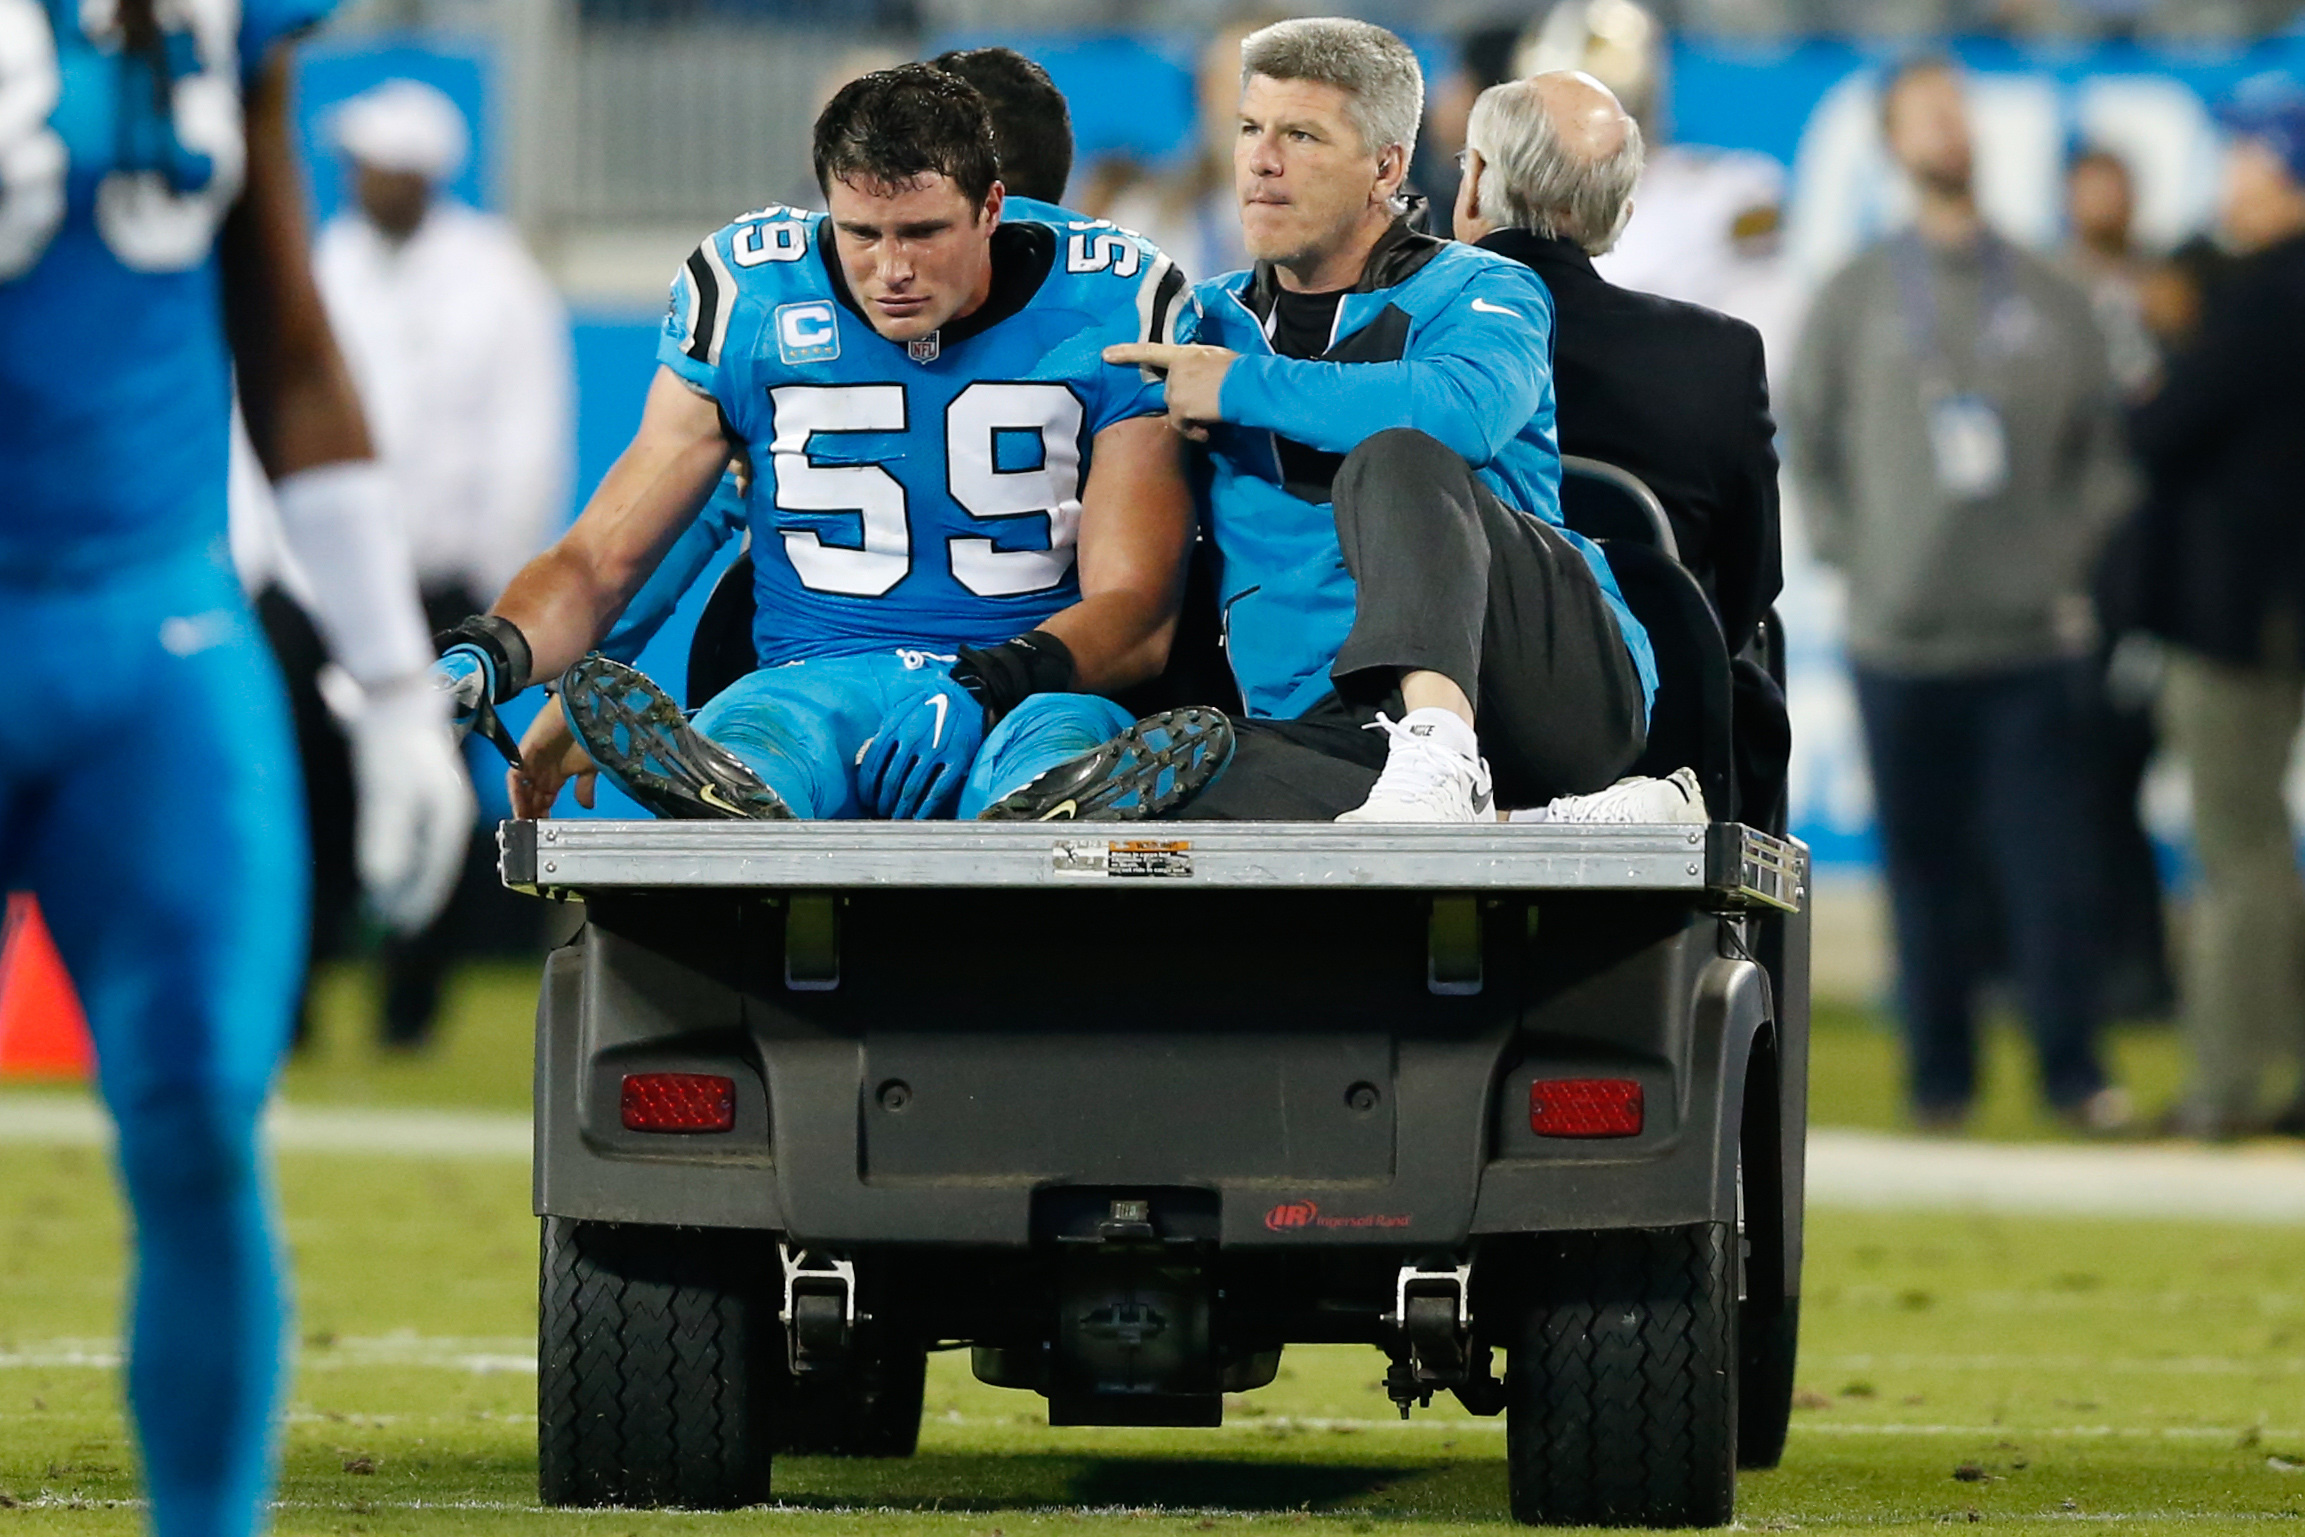 Nov 17, 2016; Charlotte, NC, USA; Carolina Panthers middle linebacker Luke Kuechly (59) rides the cart after an injury in the fourth quarter against the New Orleans Saints at Bank of America Stadium. The Panthers defeated the Saints 23-20. Mandatory Credit: Jeremy Brevard-USA TODAY Sports